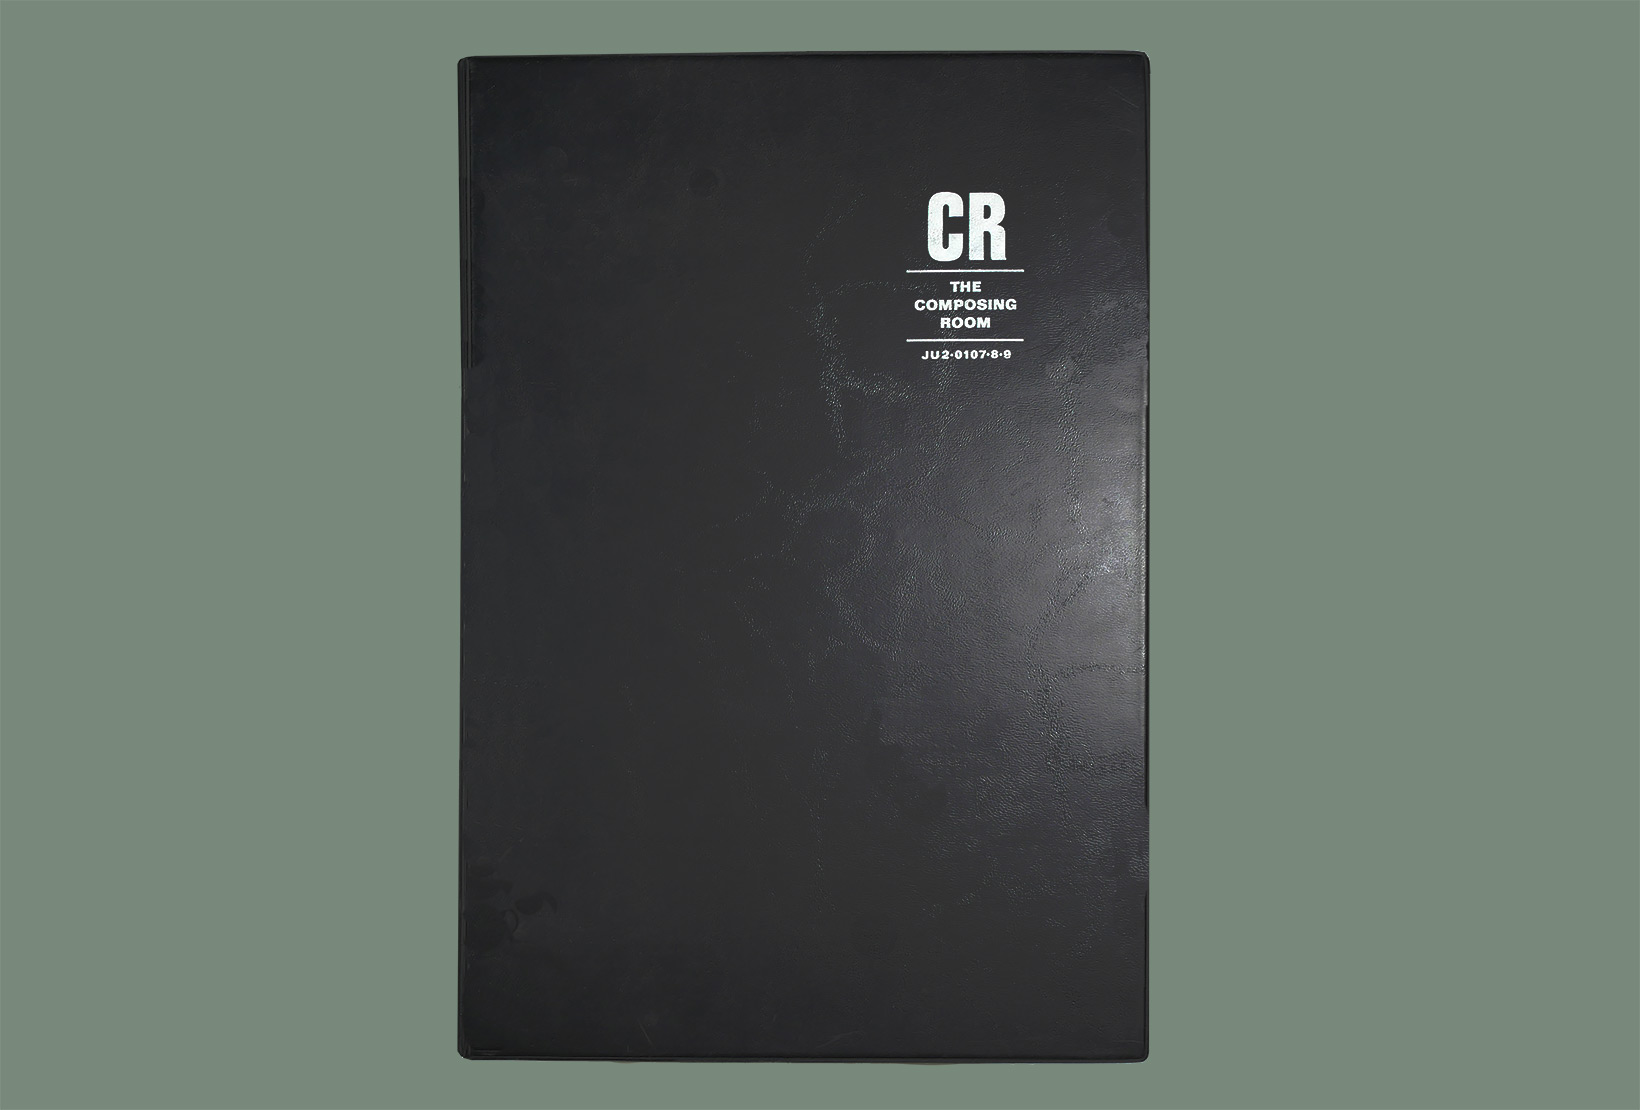 CR Metal Type Book Cover